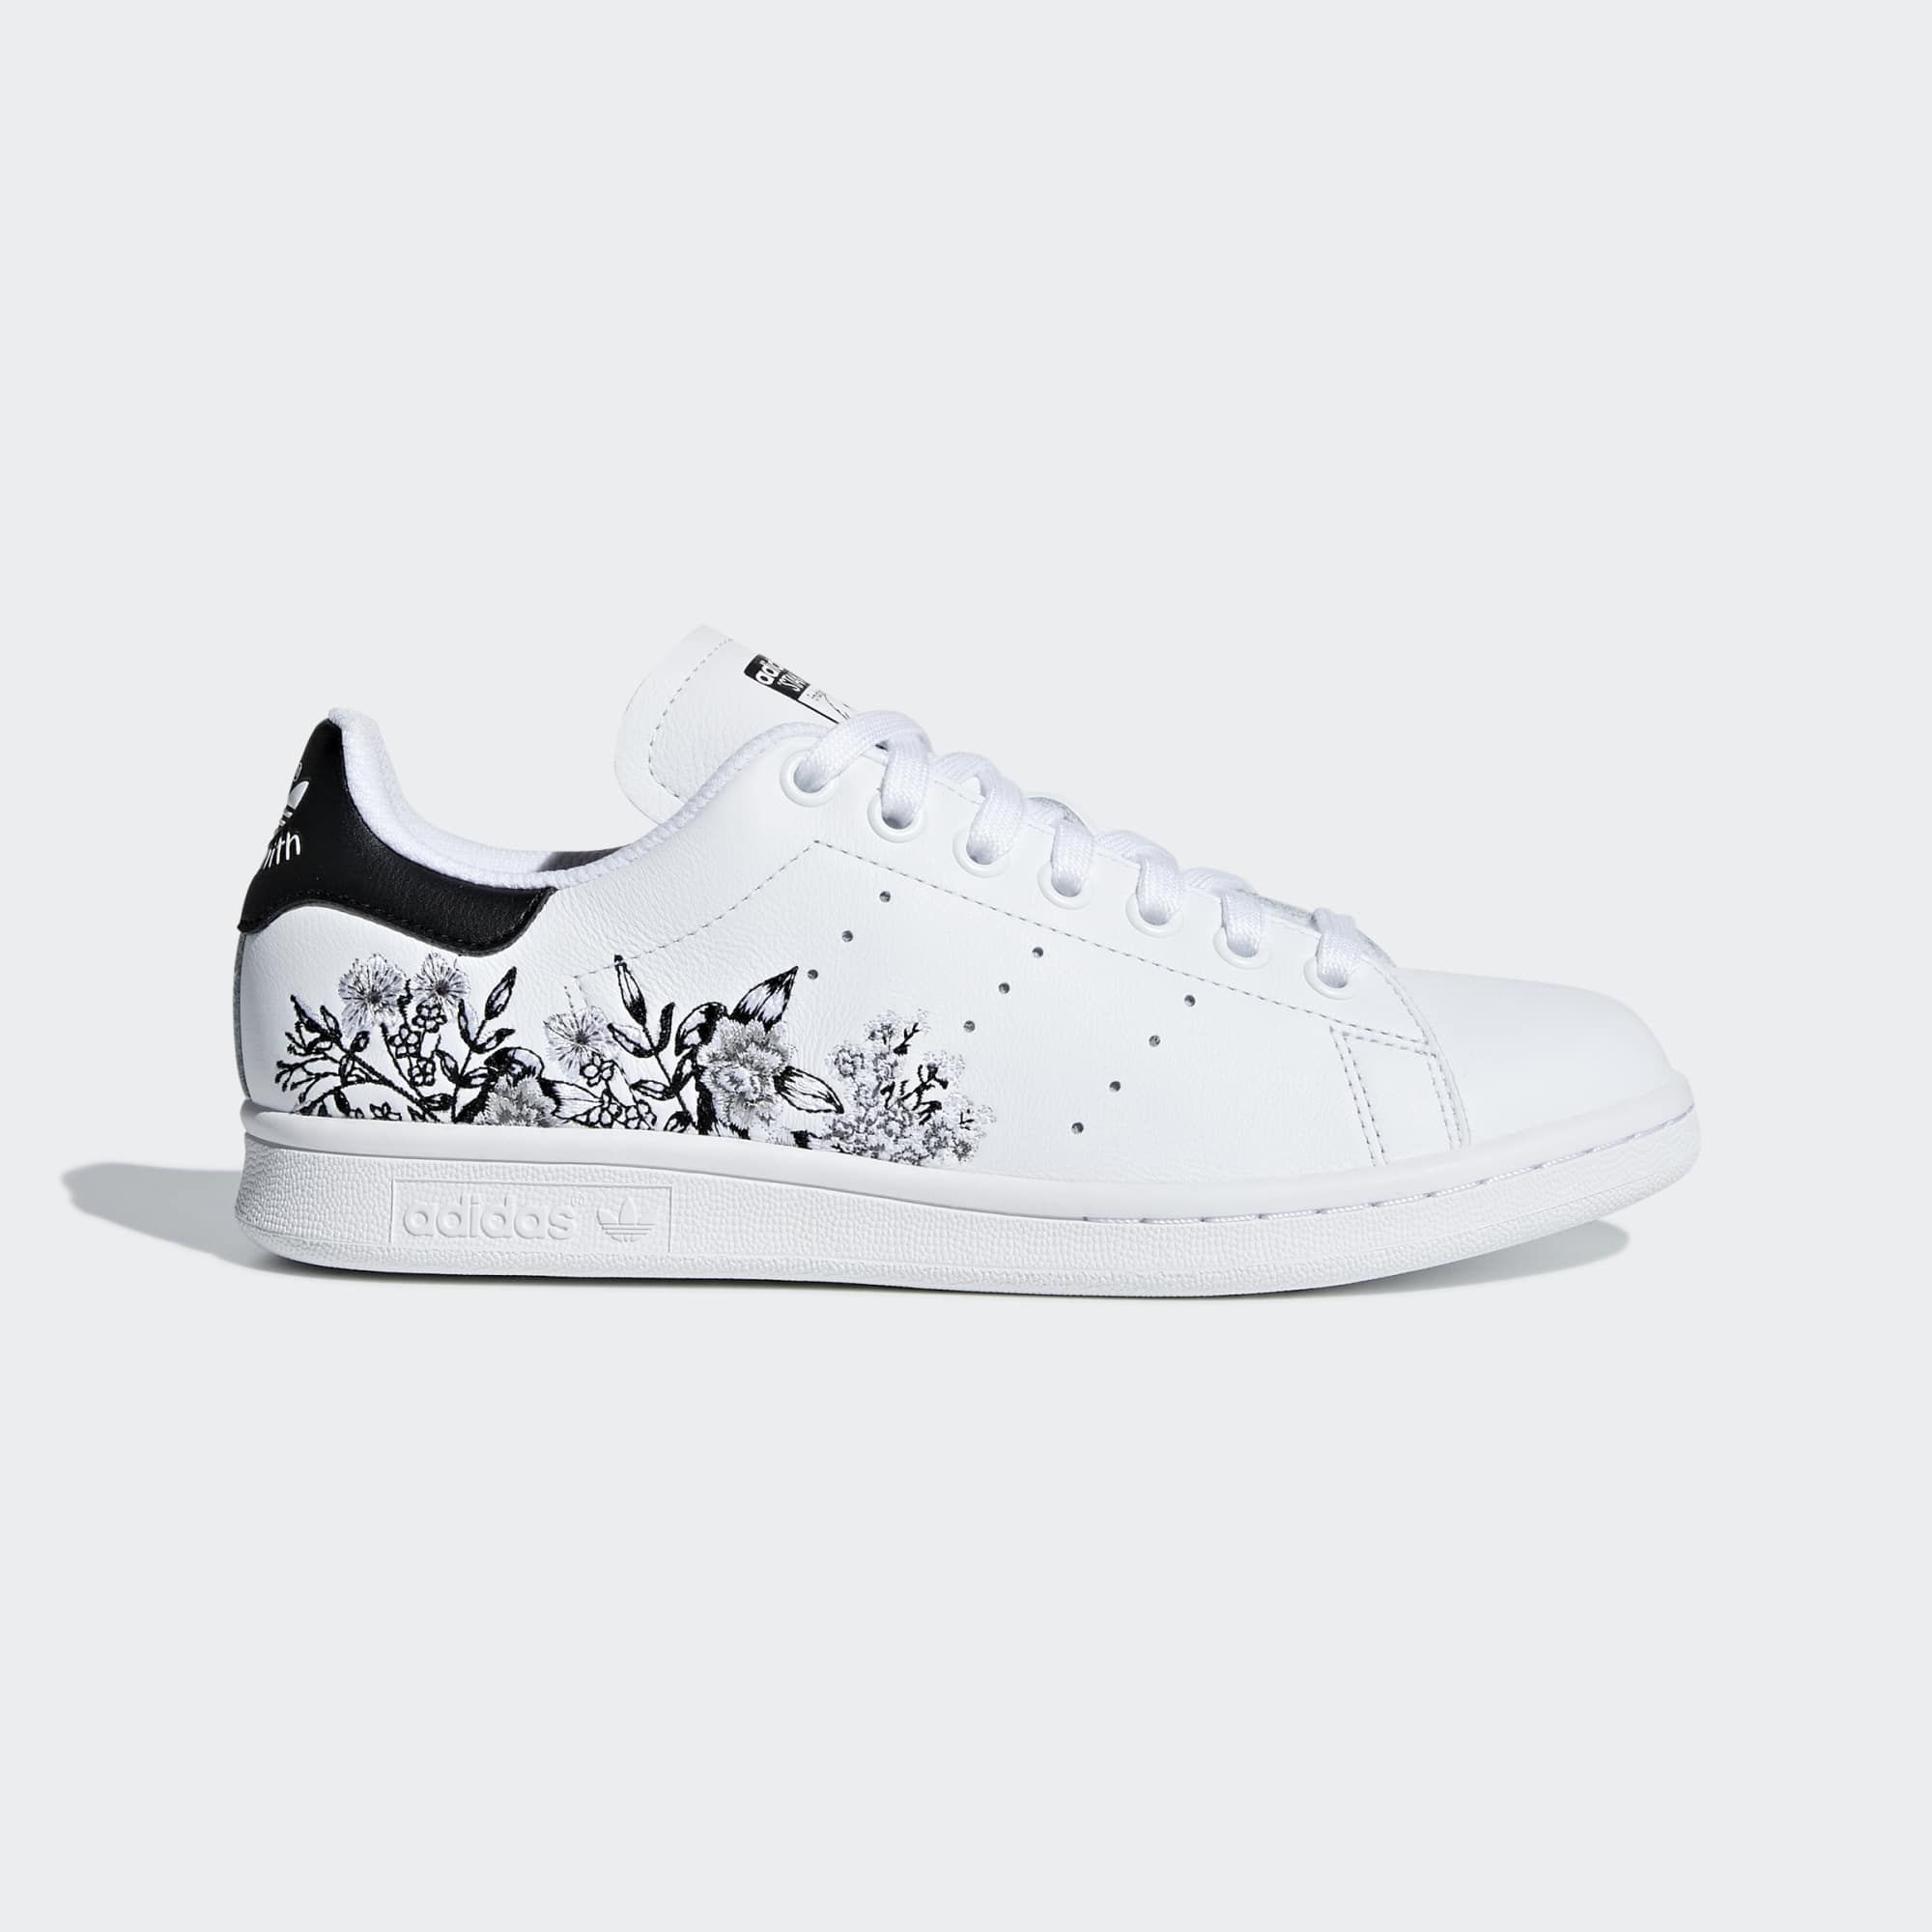 2d2833df5b Stan Smith Shoes in 2019 | I need dis | Stan smith shoes, Adidas ...